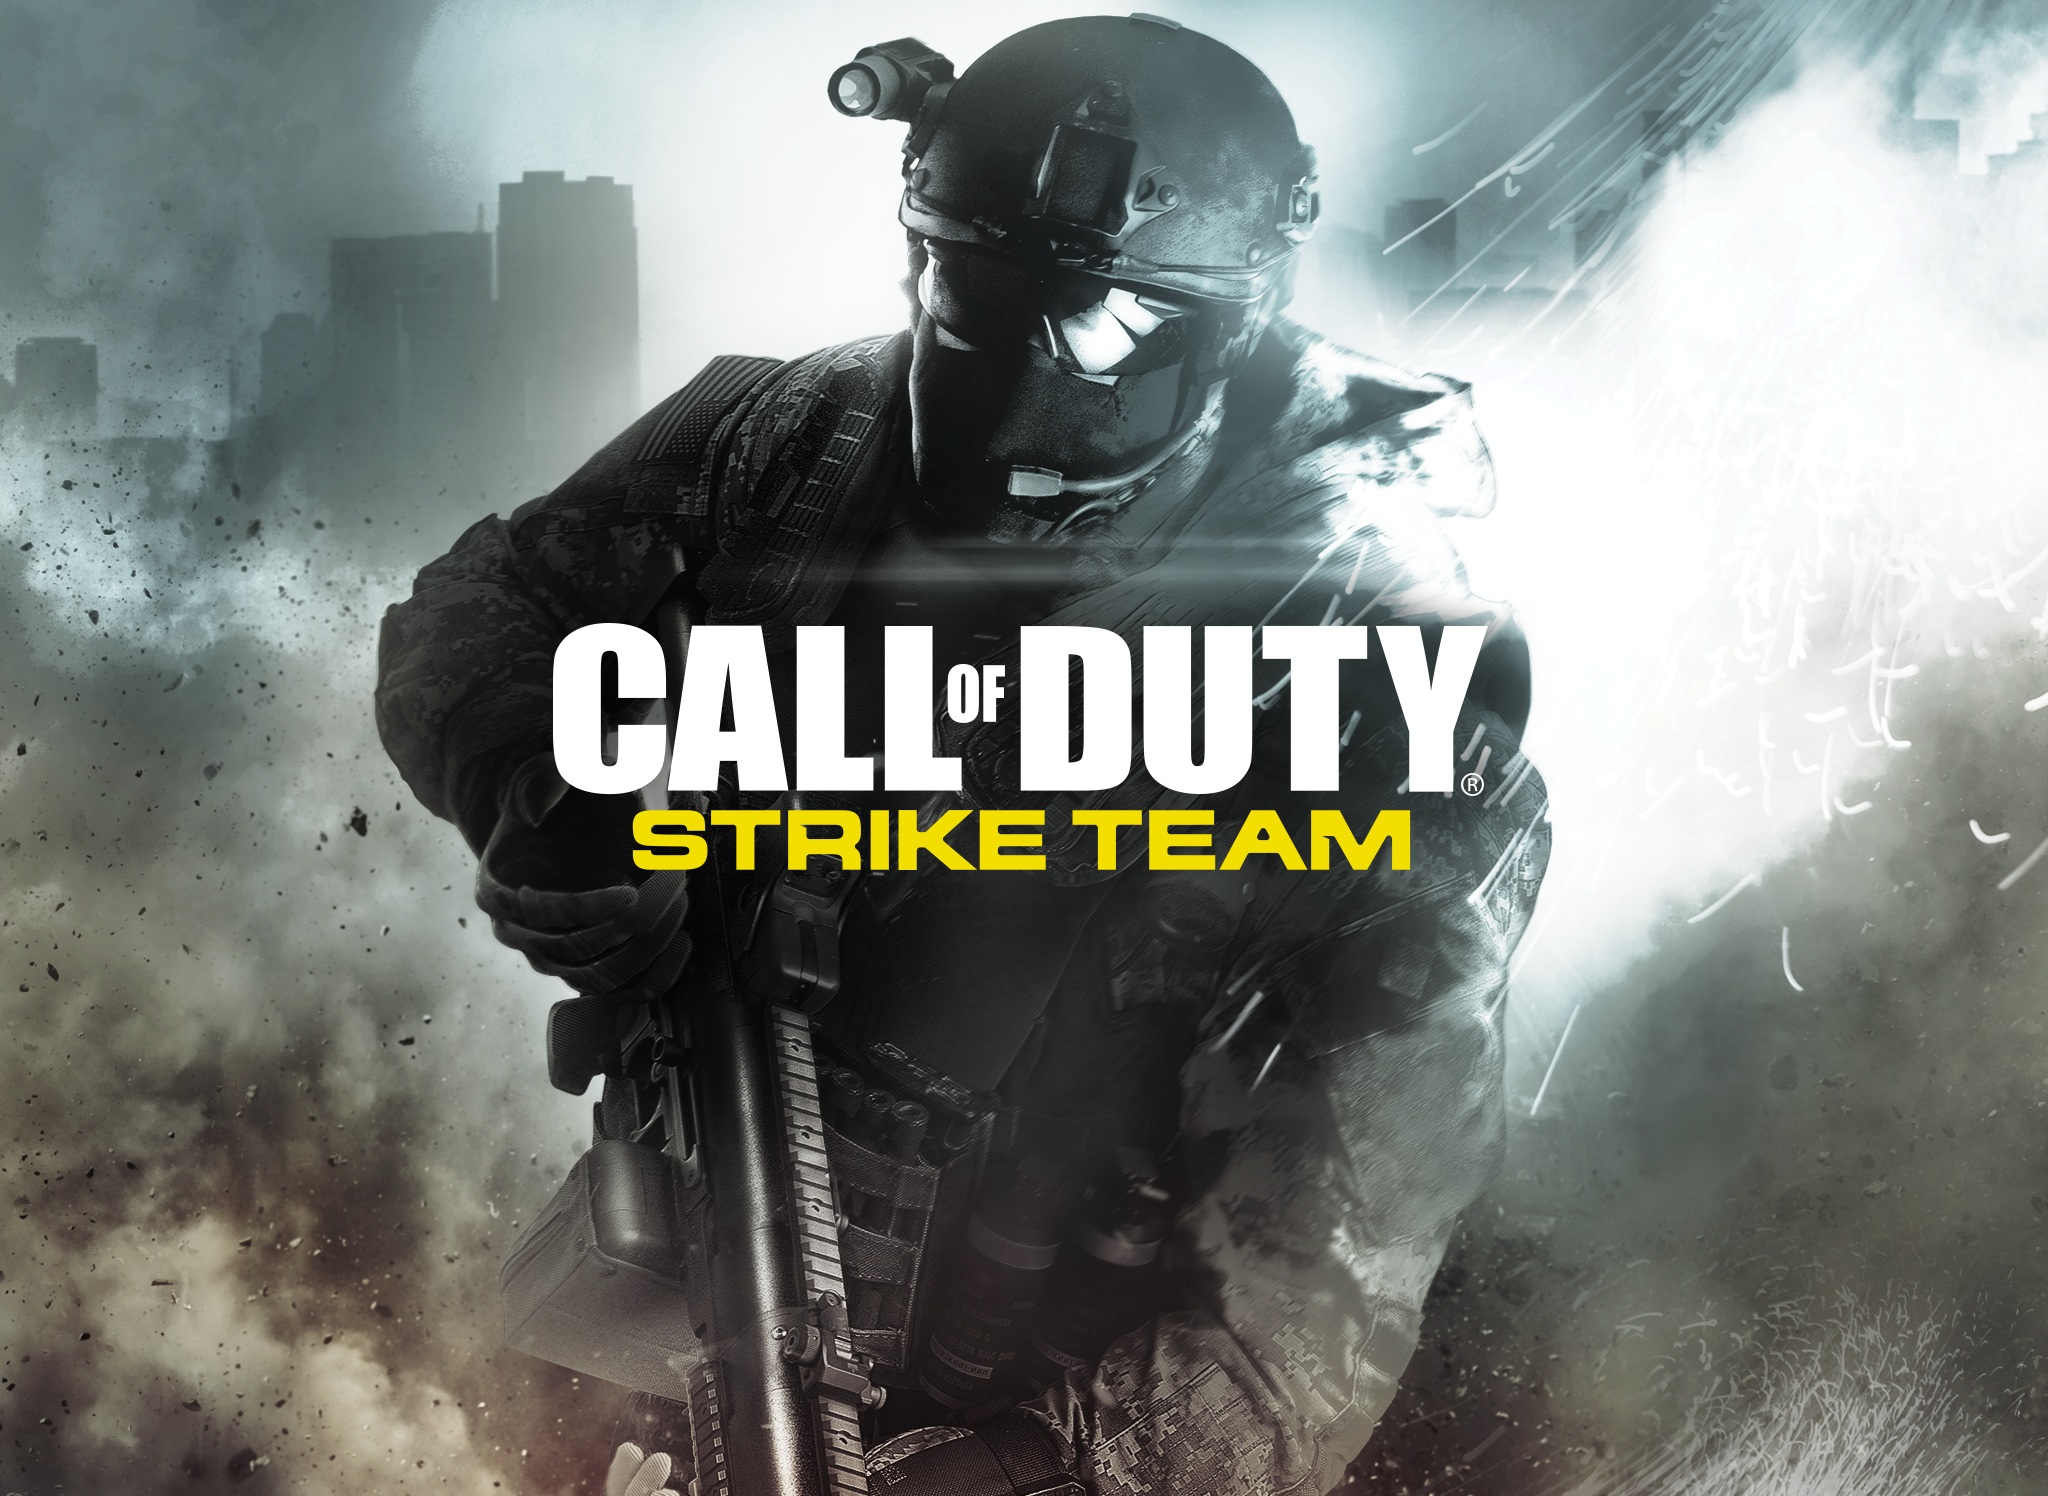 Call_of_Duty_Strike_Team_key_art